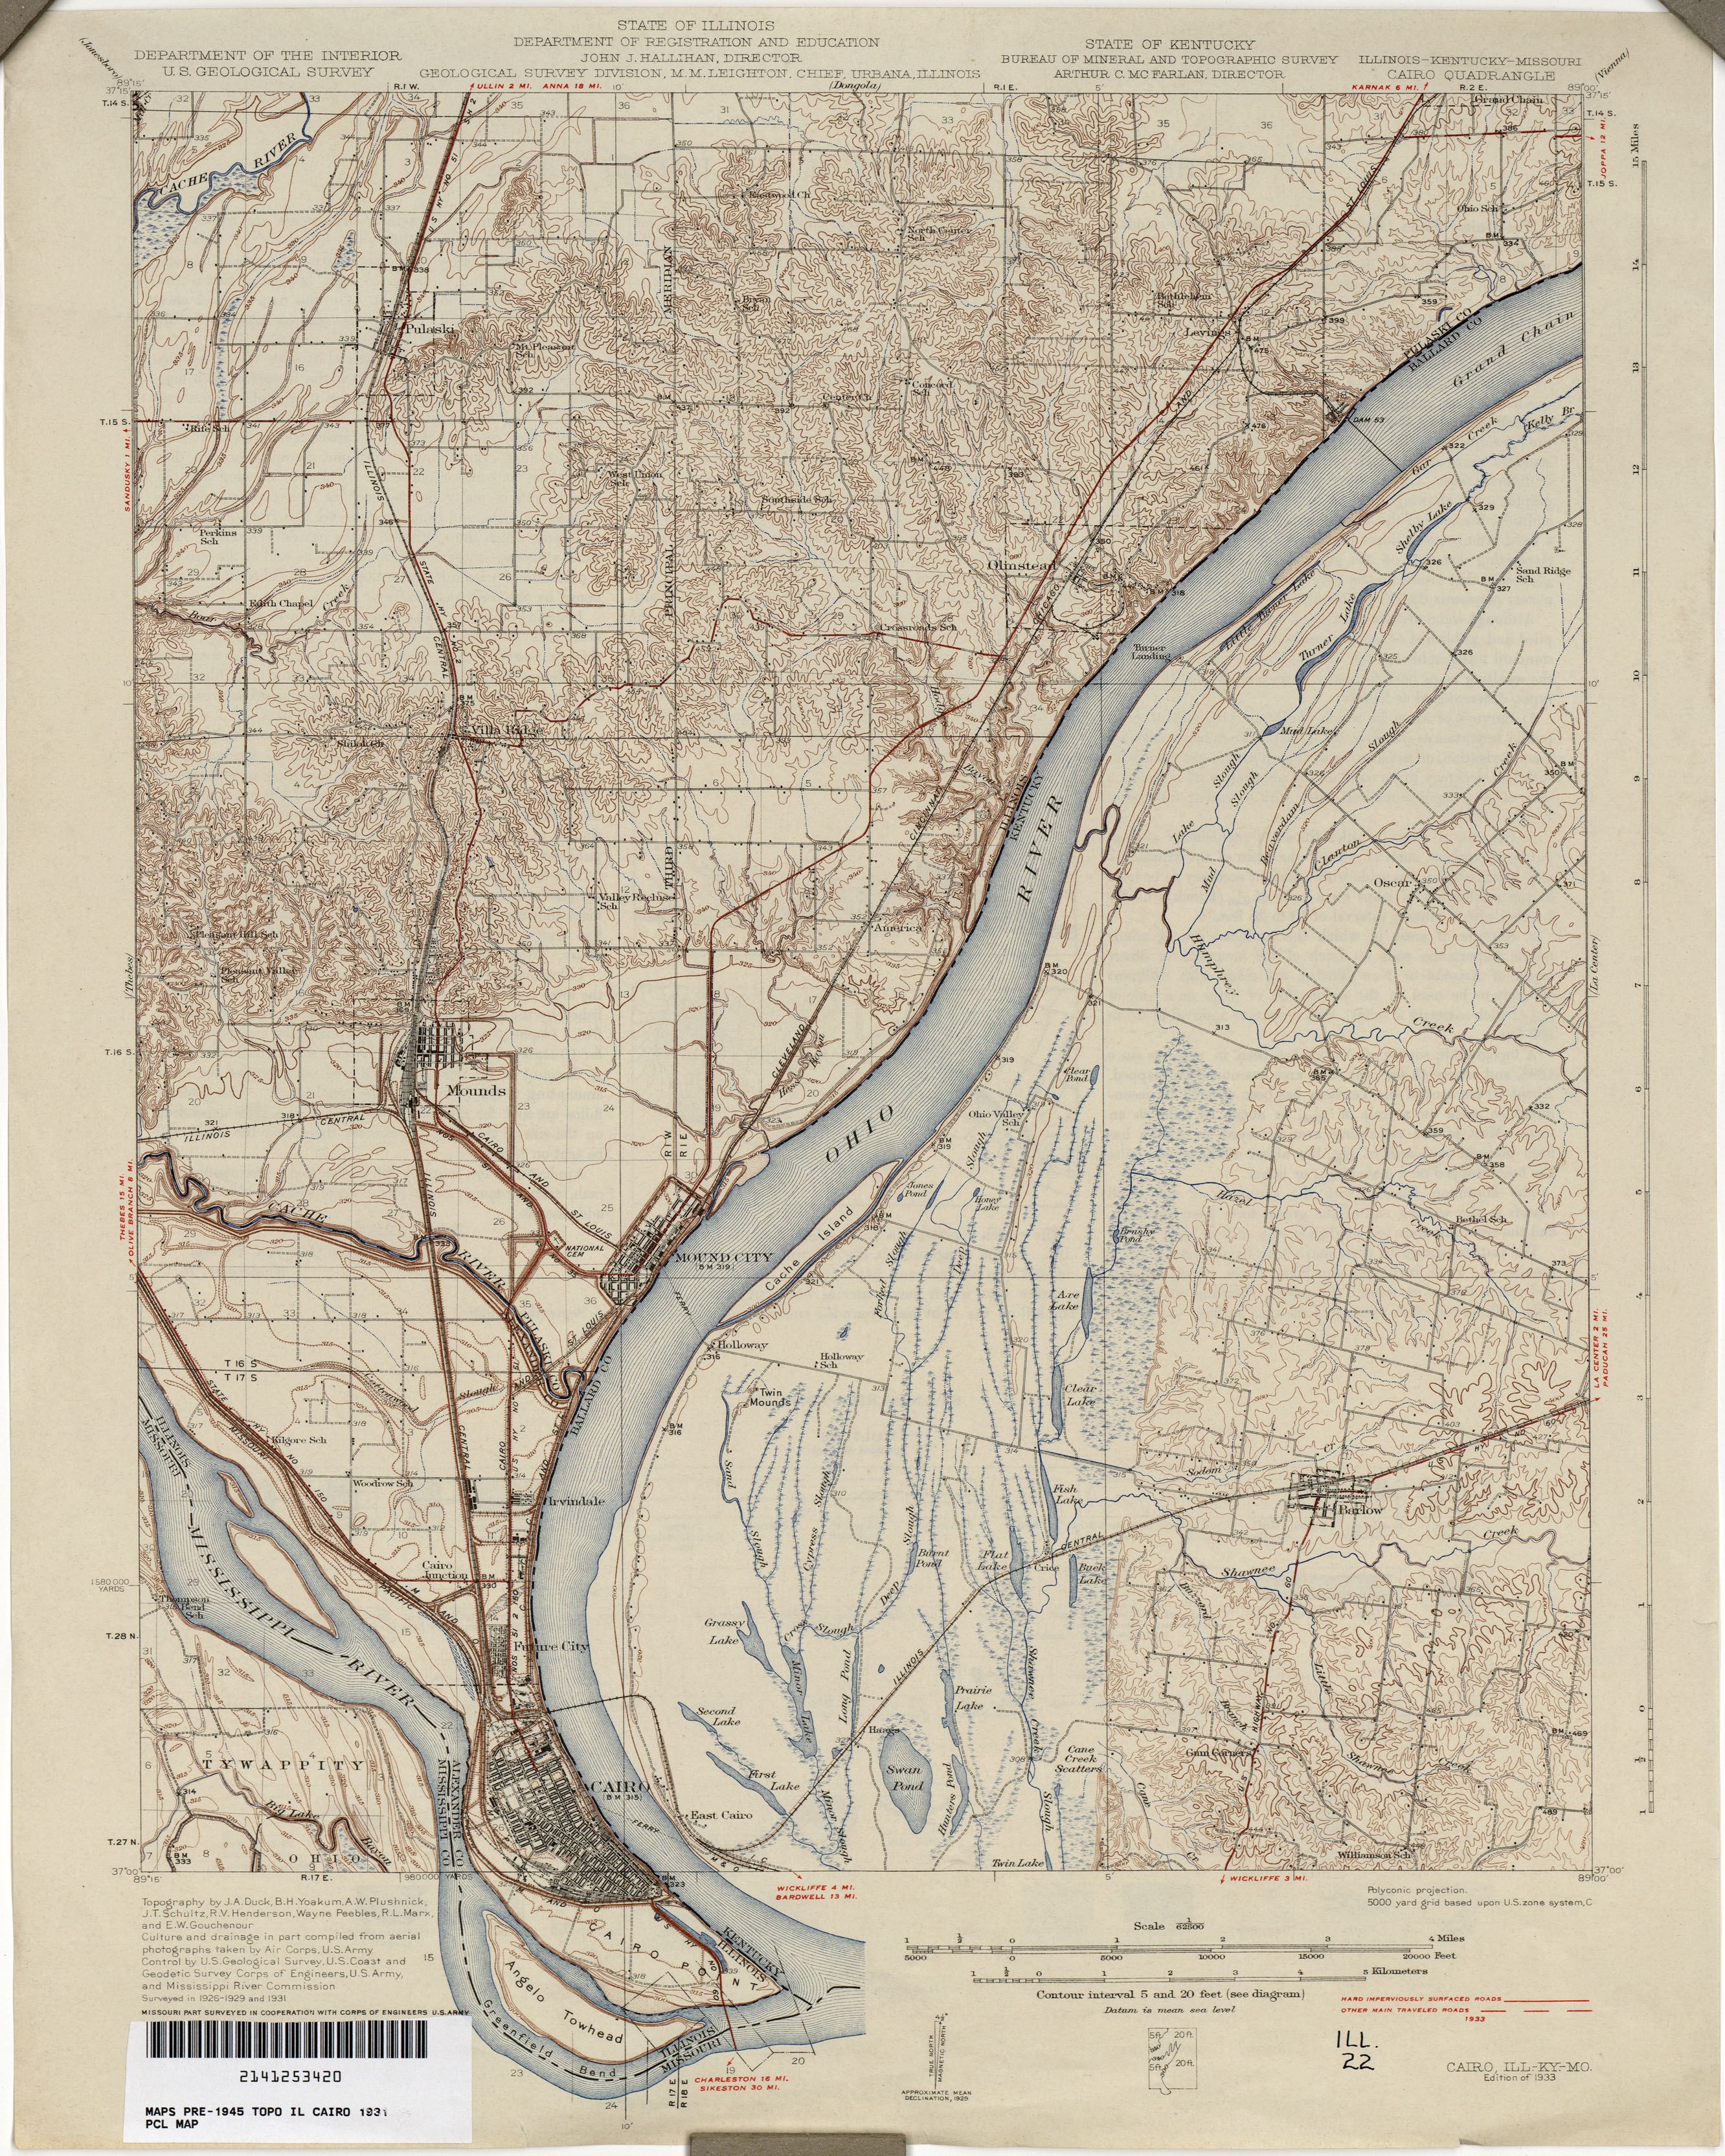 Illinois Historical Topographic Maps - Perry-Castañeda Map ... on illinois state map missouri, map of streets in hannibal, map downtown hannibal,